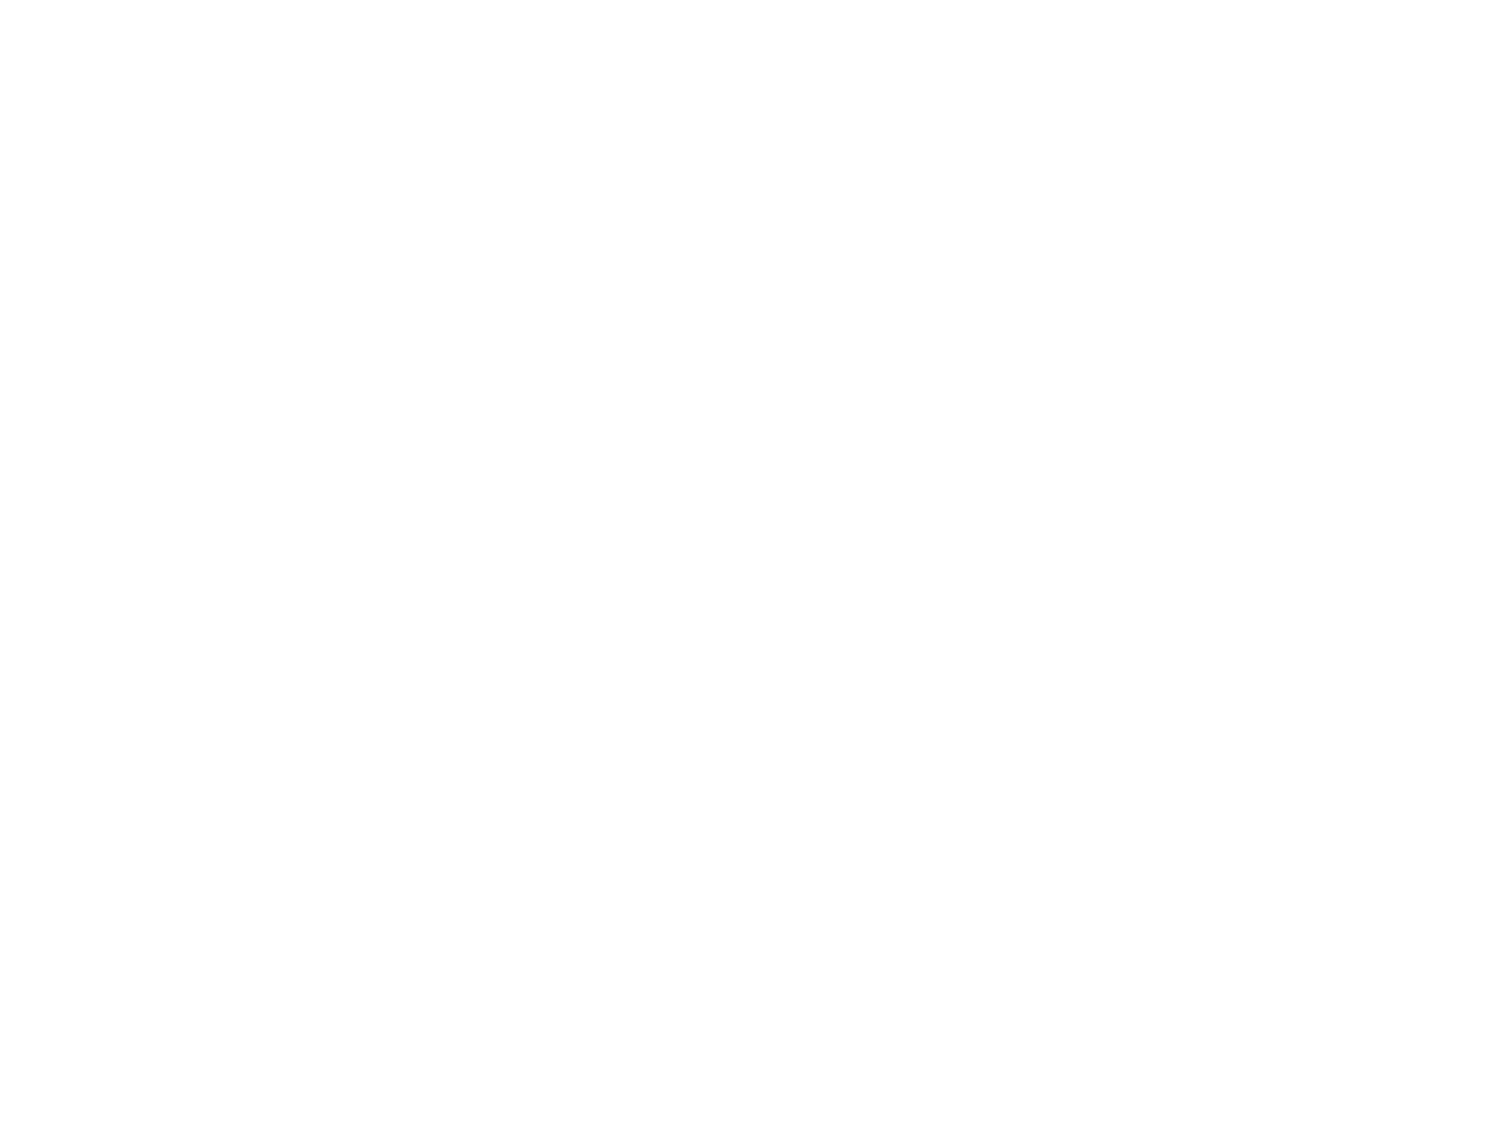 Standardized Success